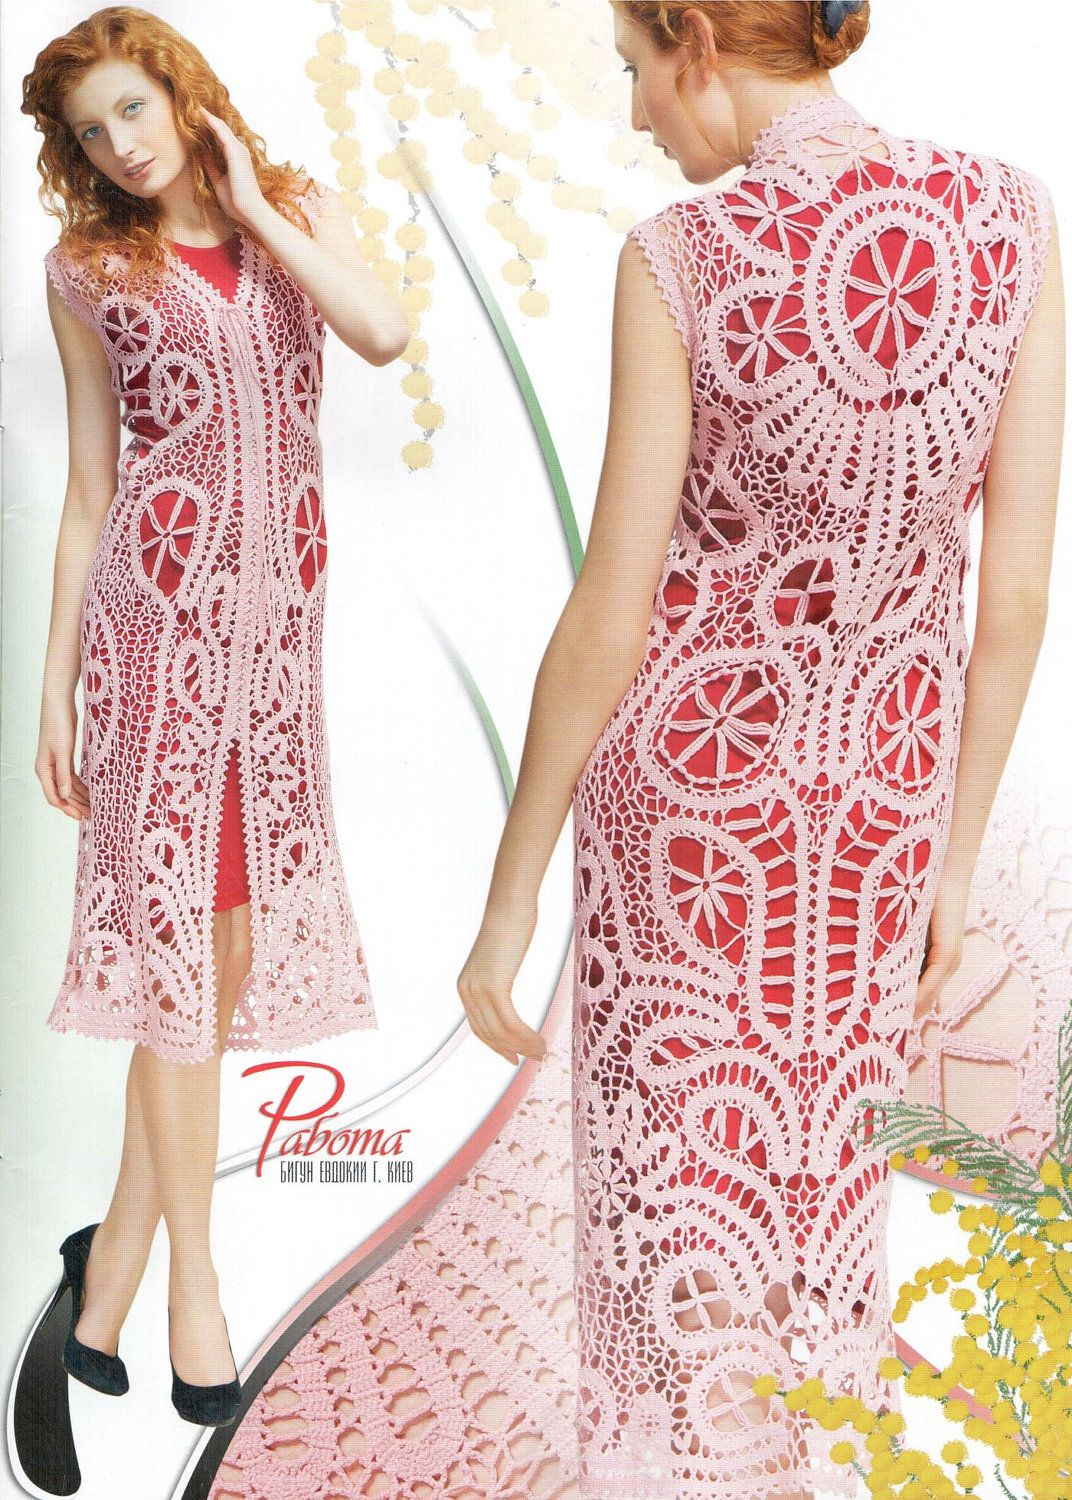 Irish Bruges Lace Doily Crochet Patterns Book Dress Top Skirt ...